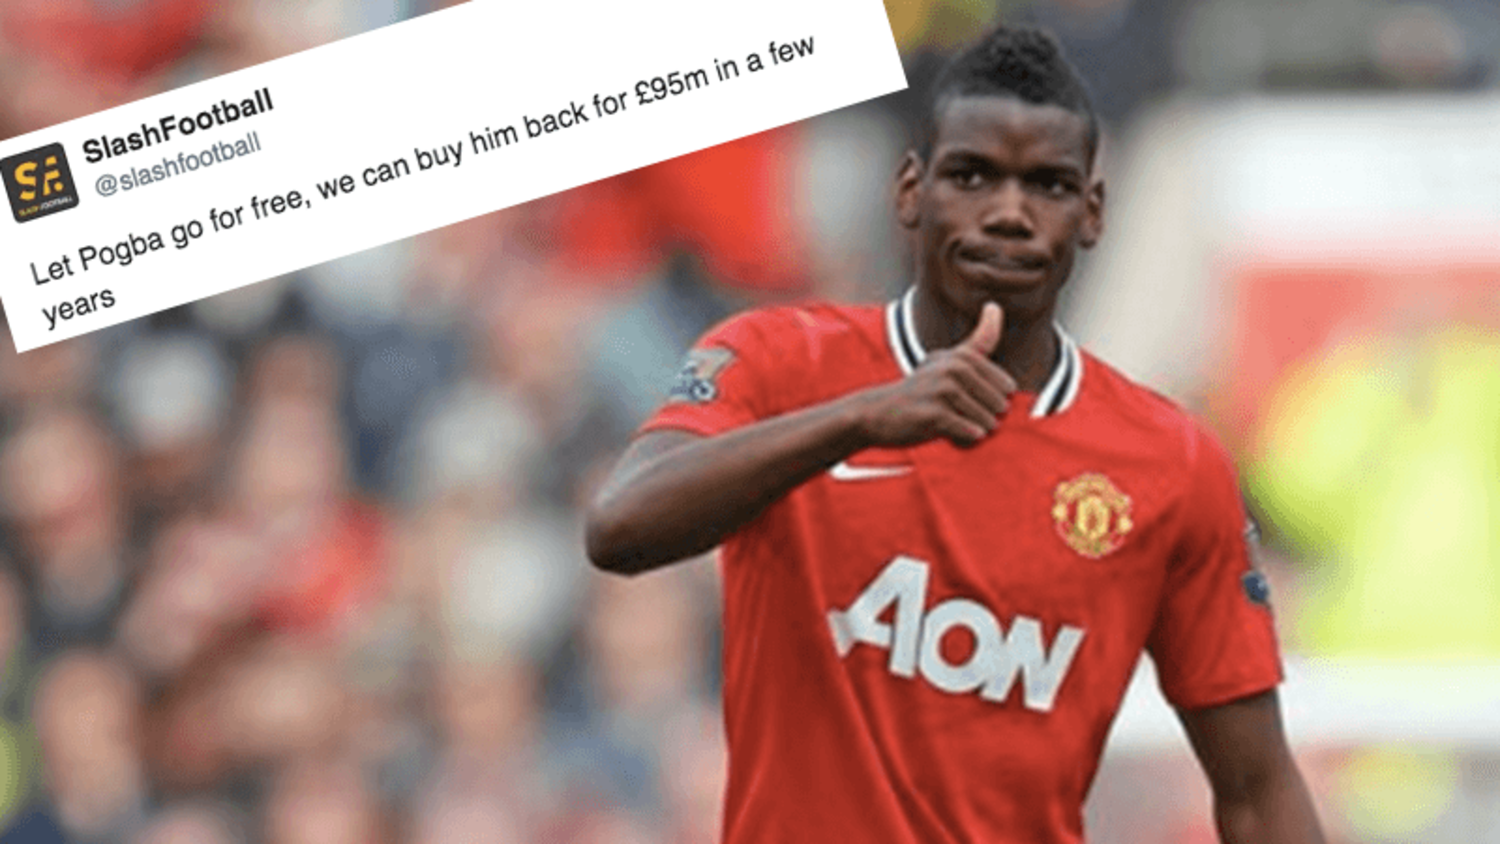 Best reactions as Man United reportedly begin talks over £100m Paul Pogba return